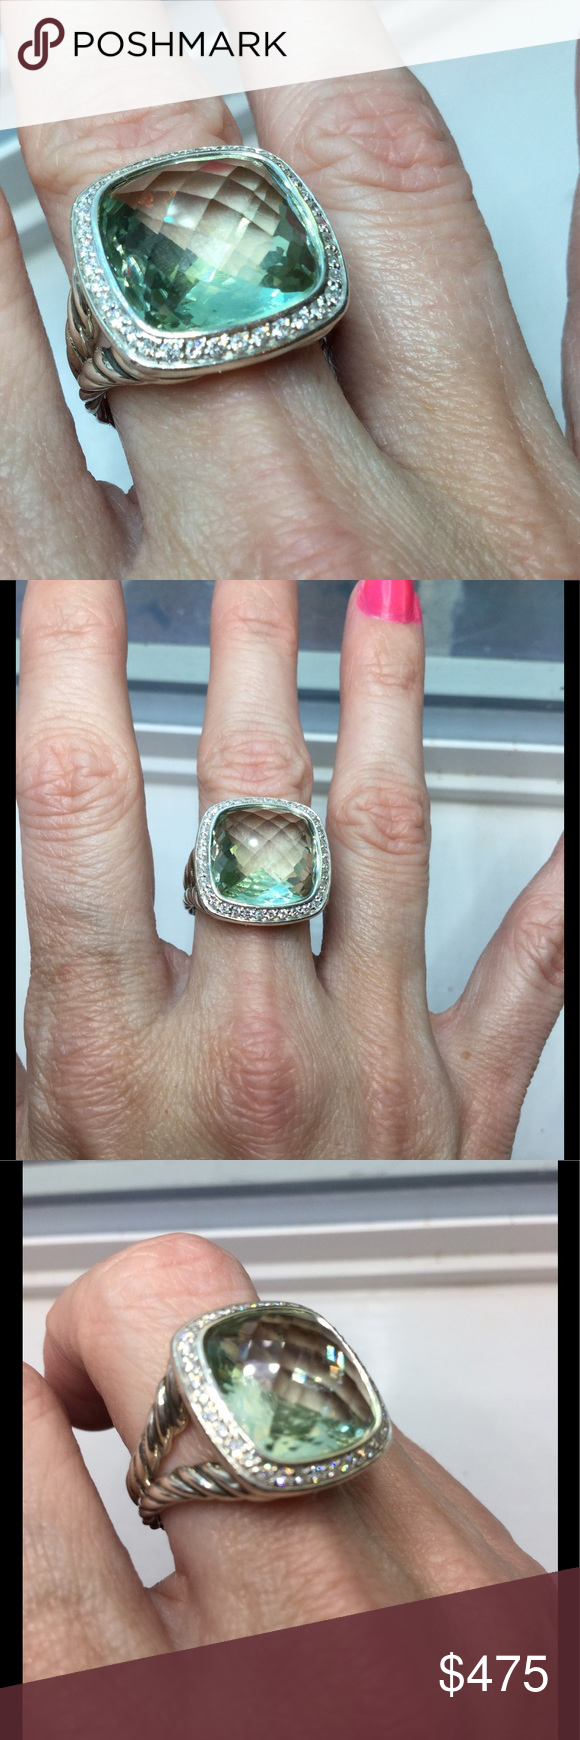 albion prasiolite ring this is an absolutely pristine authentic david yurman albion ring with largest stone size available 14mm itu0027s set in sterling